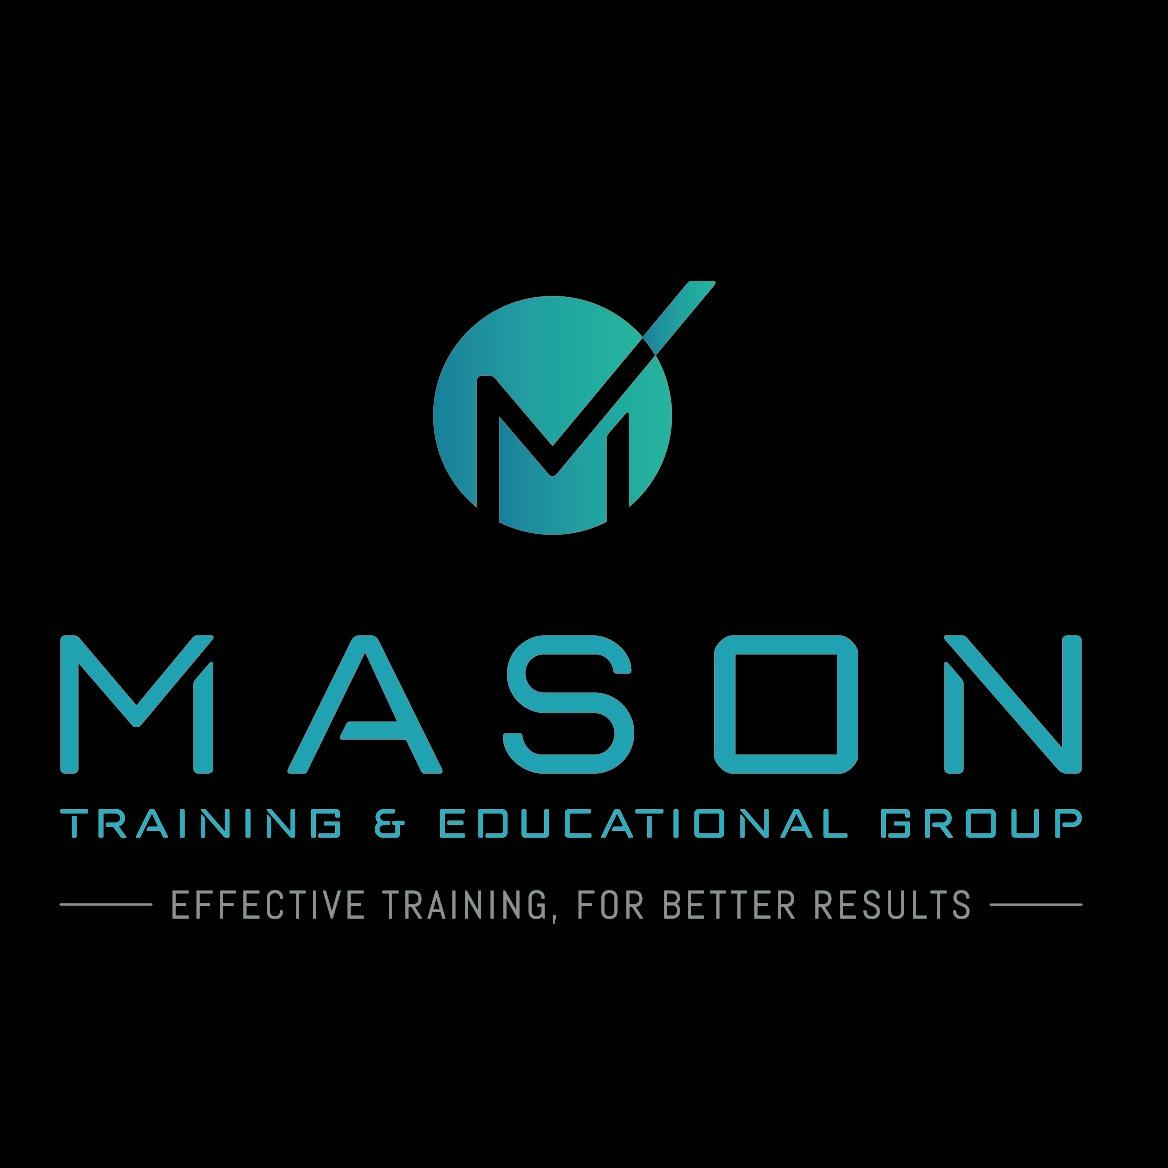 Mason Training and Educational Group LLC - St. Augustine, FL 32084 - (888)303-5862 | ShowMeLocal.com